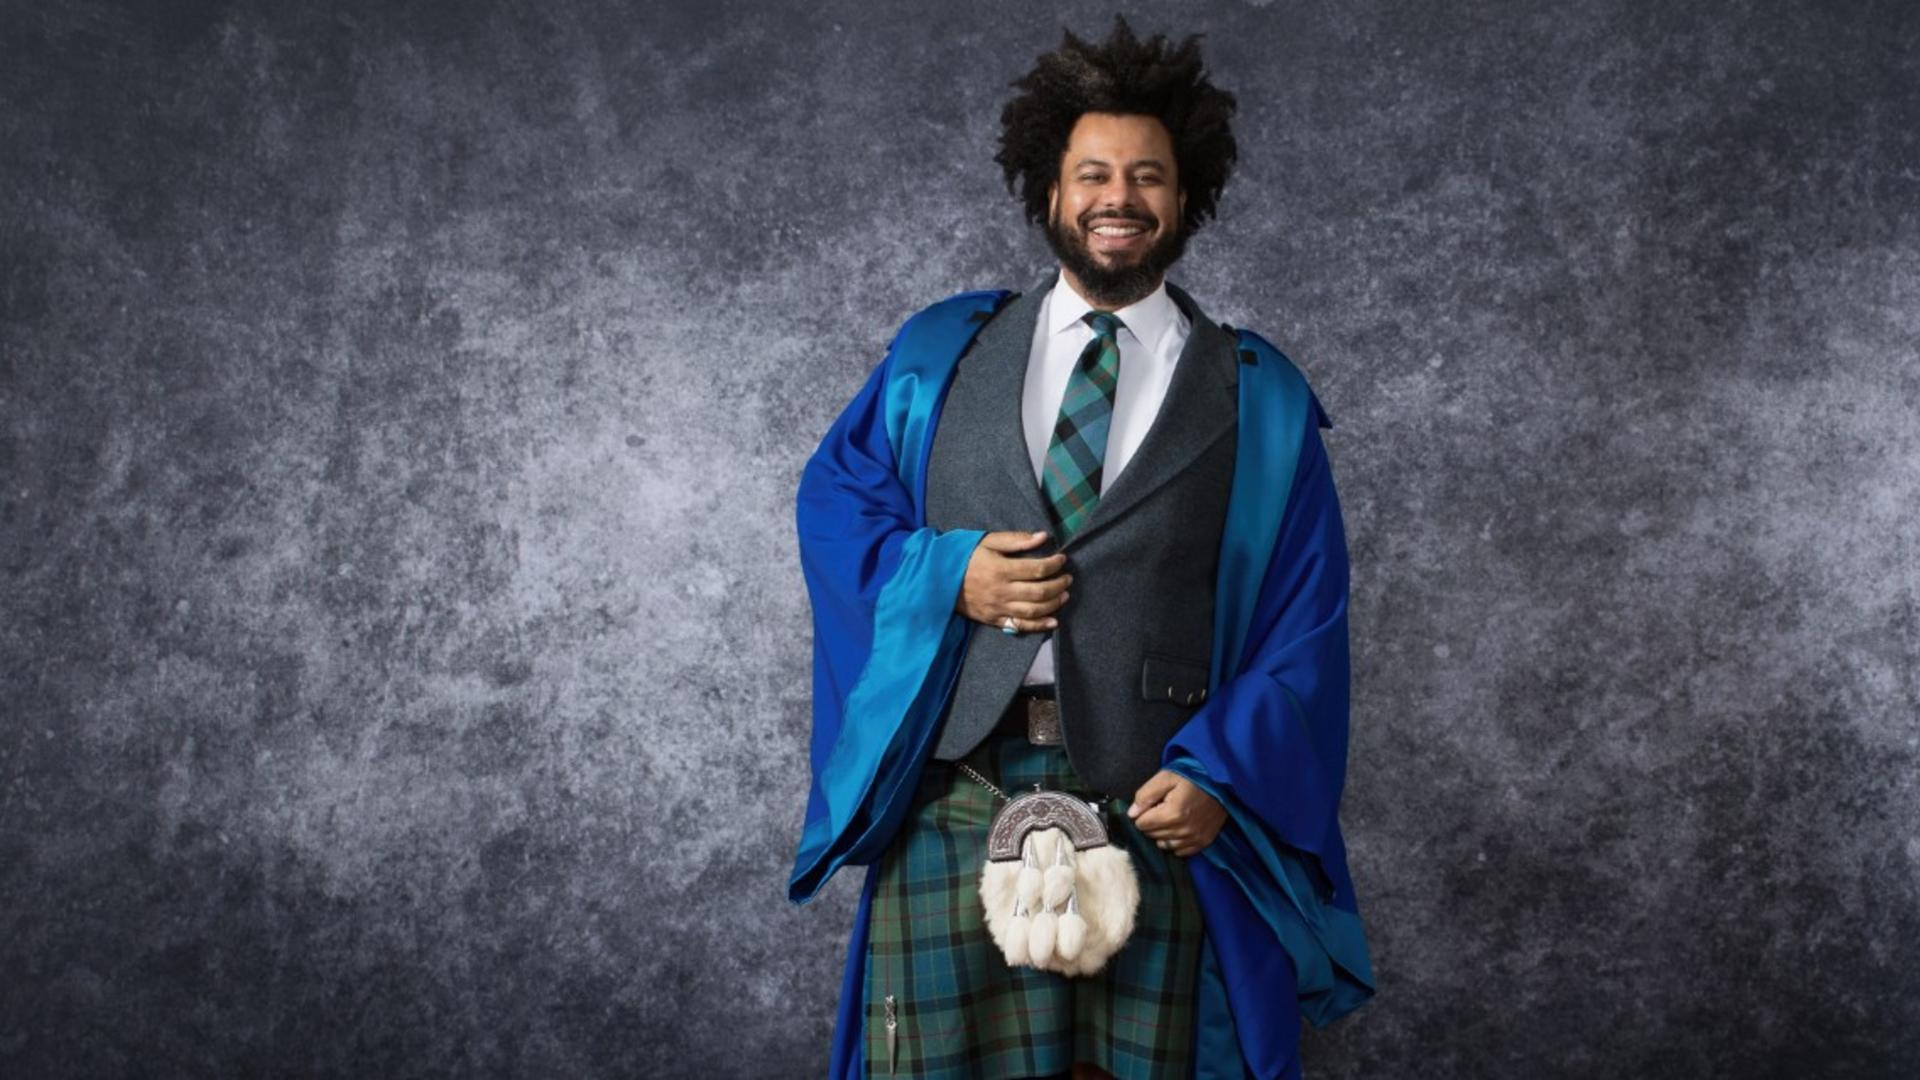 Johnathan Wilson in his graduation gown in front of a textured background